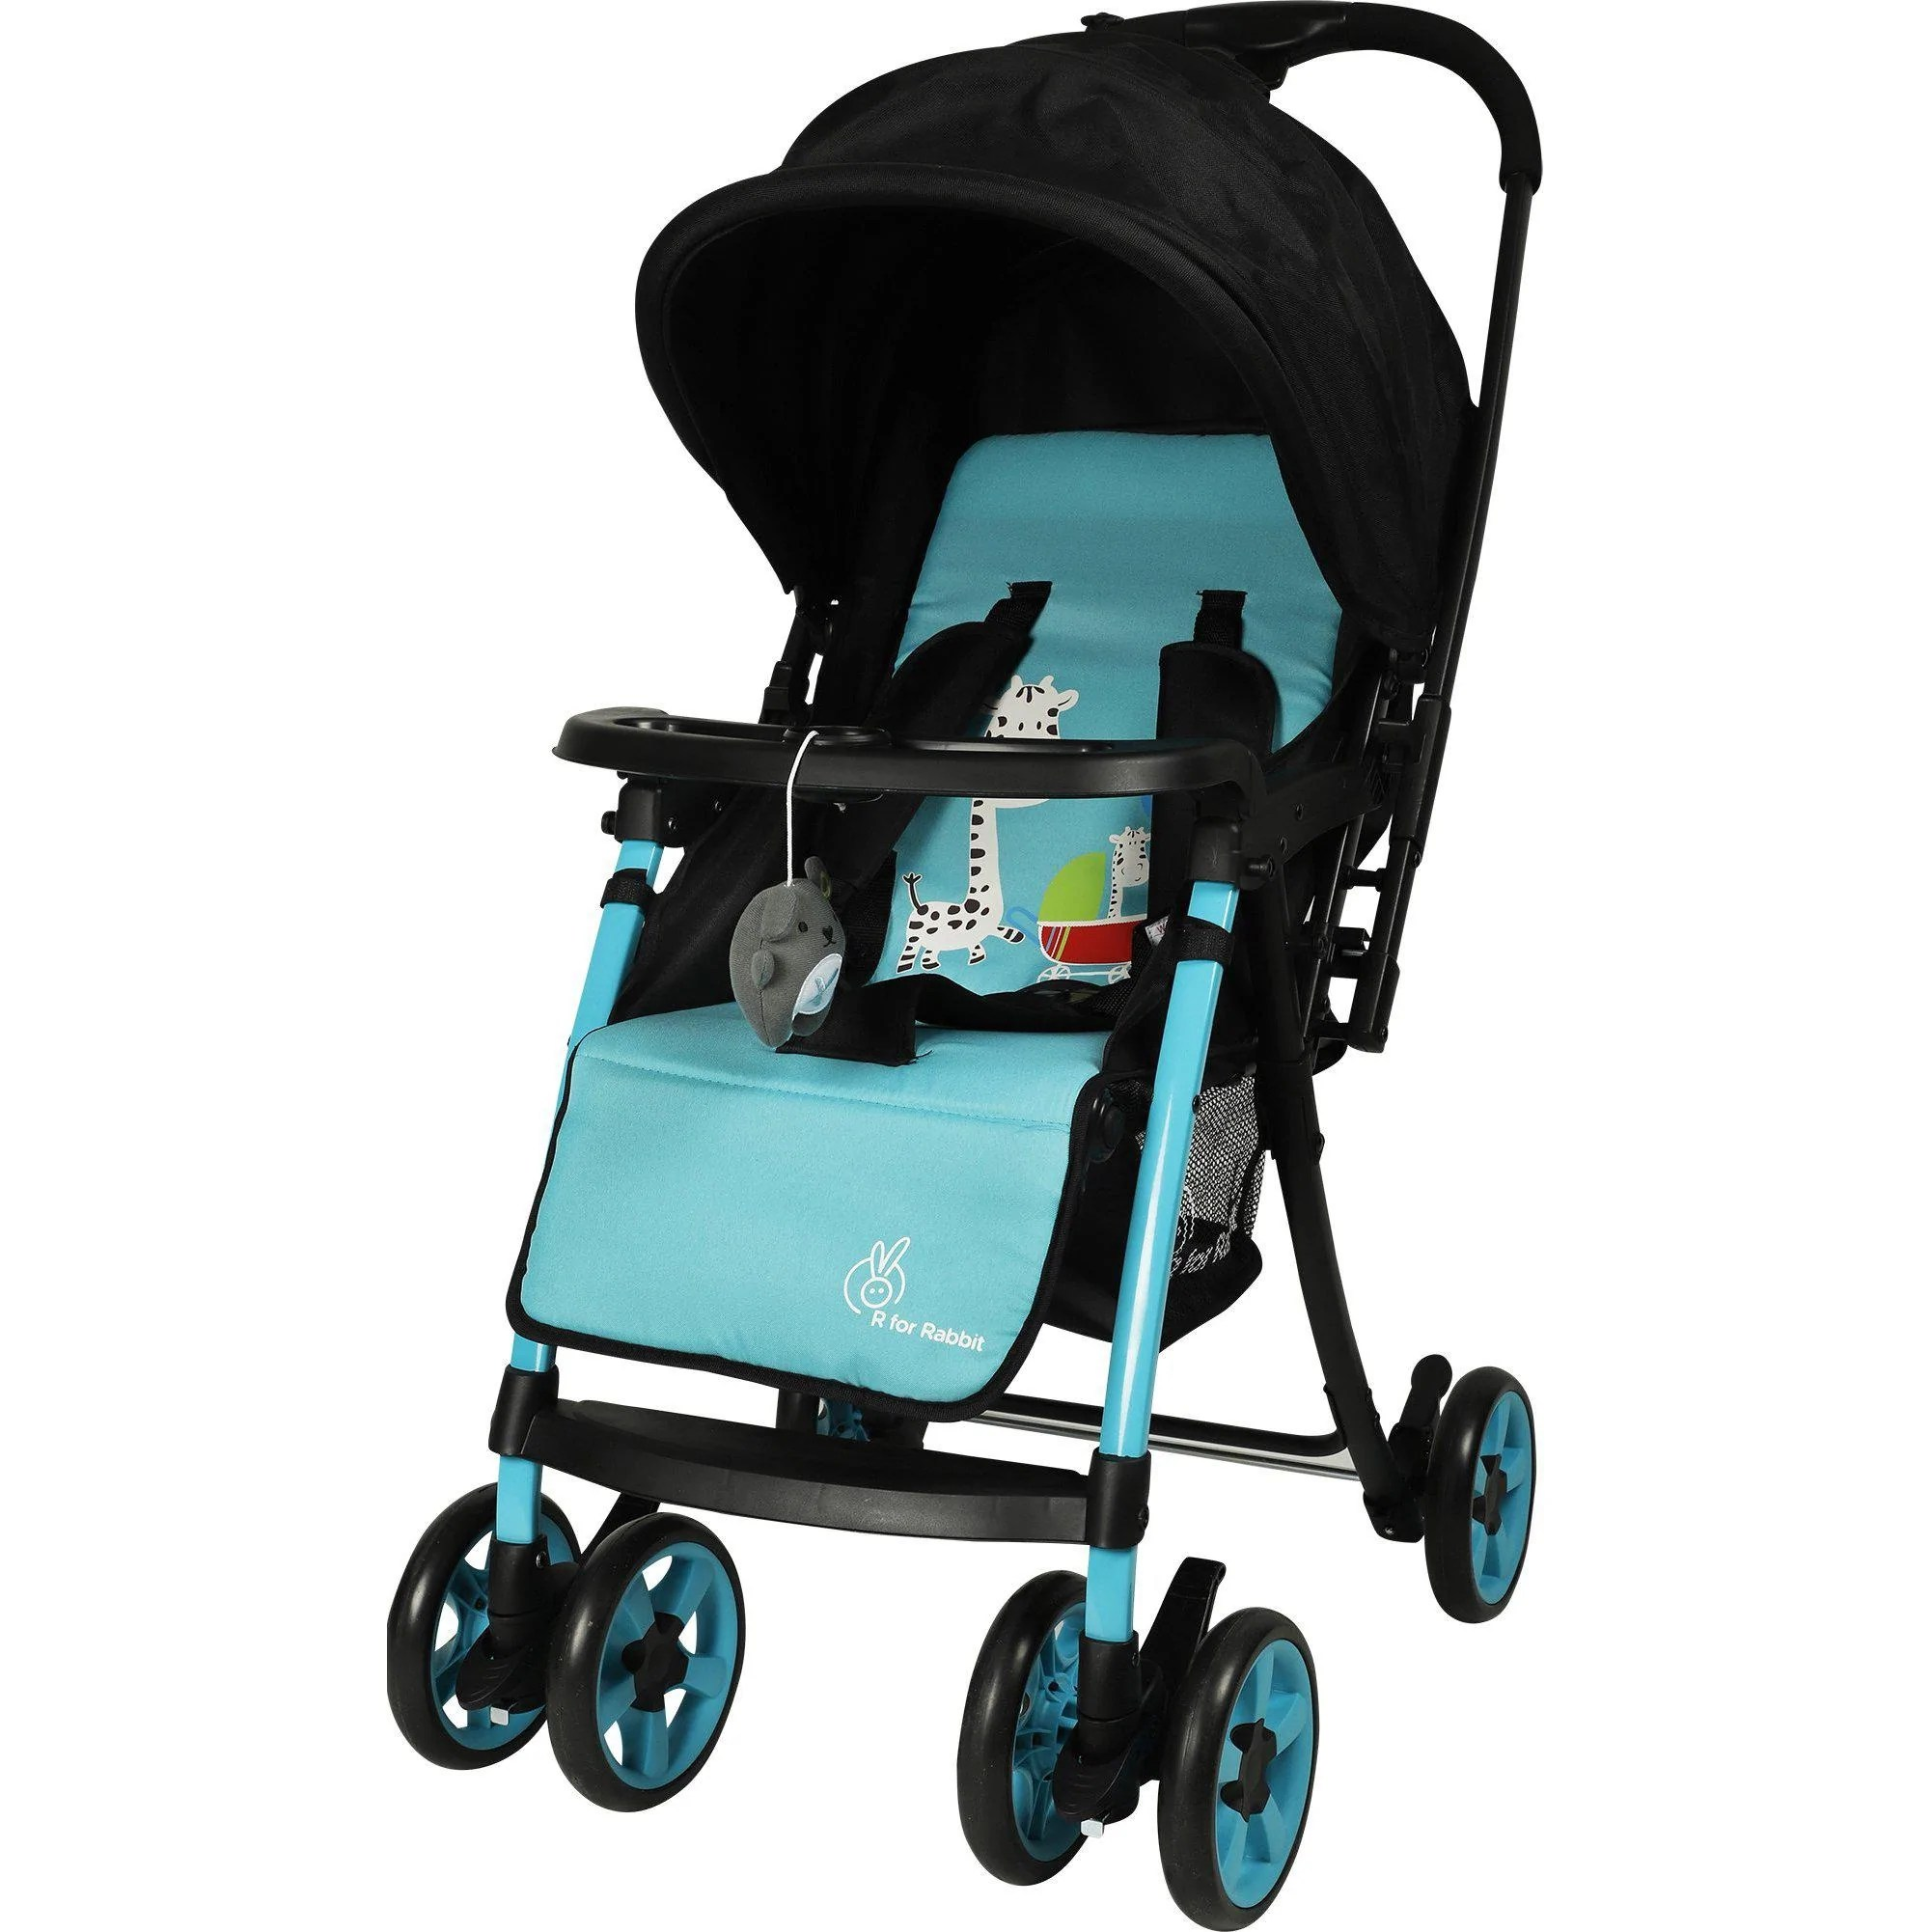 Pram Stroller India R For Rabbit Poppins Plus Pram Baby Stroller And Pram For